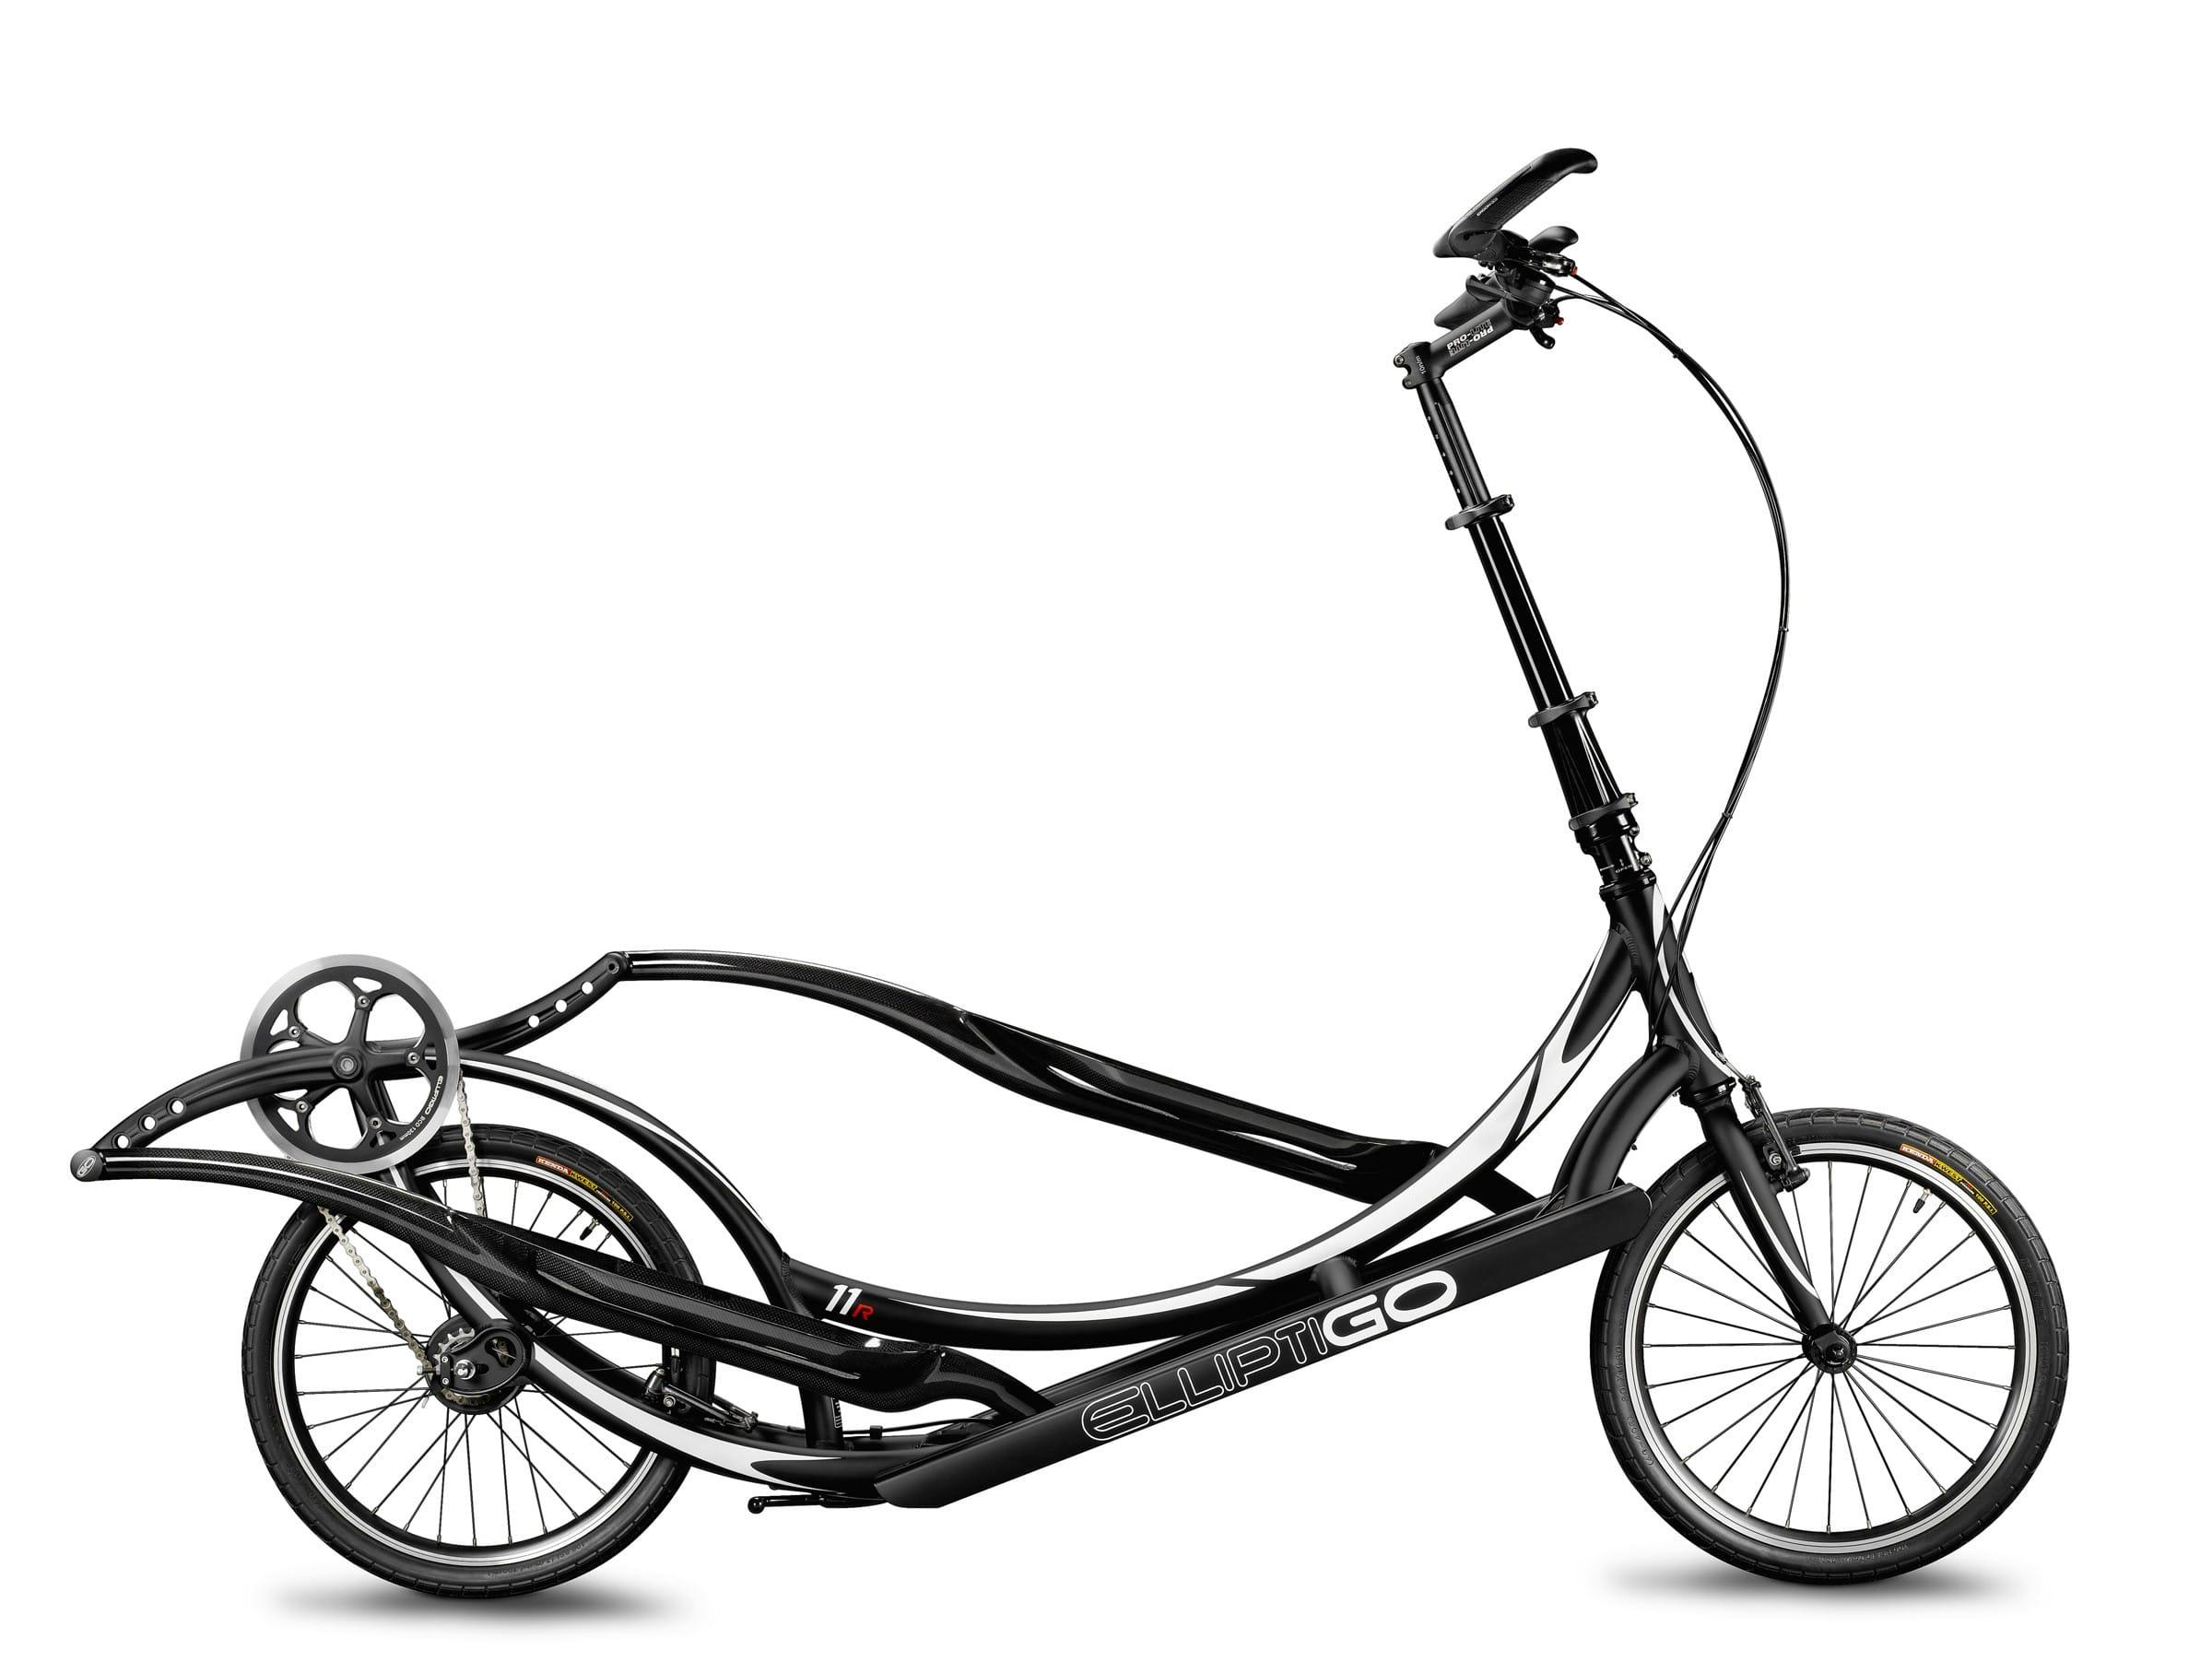 ElliptiGO 11R in full black aluminum frame